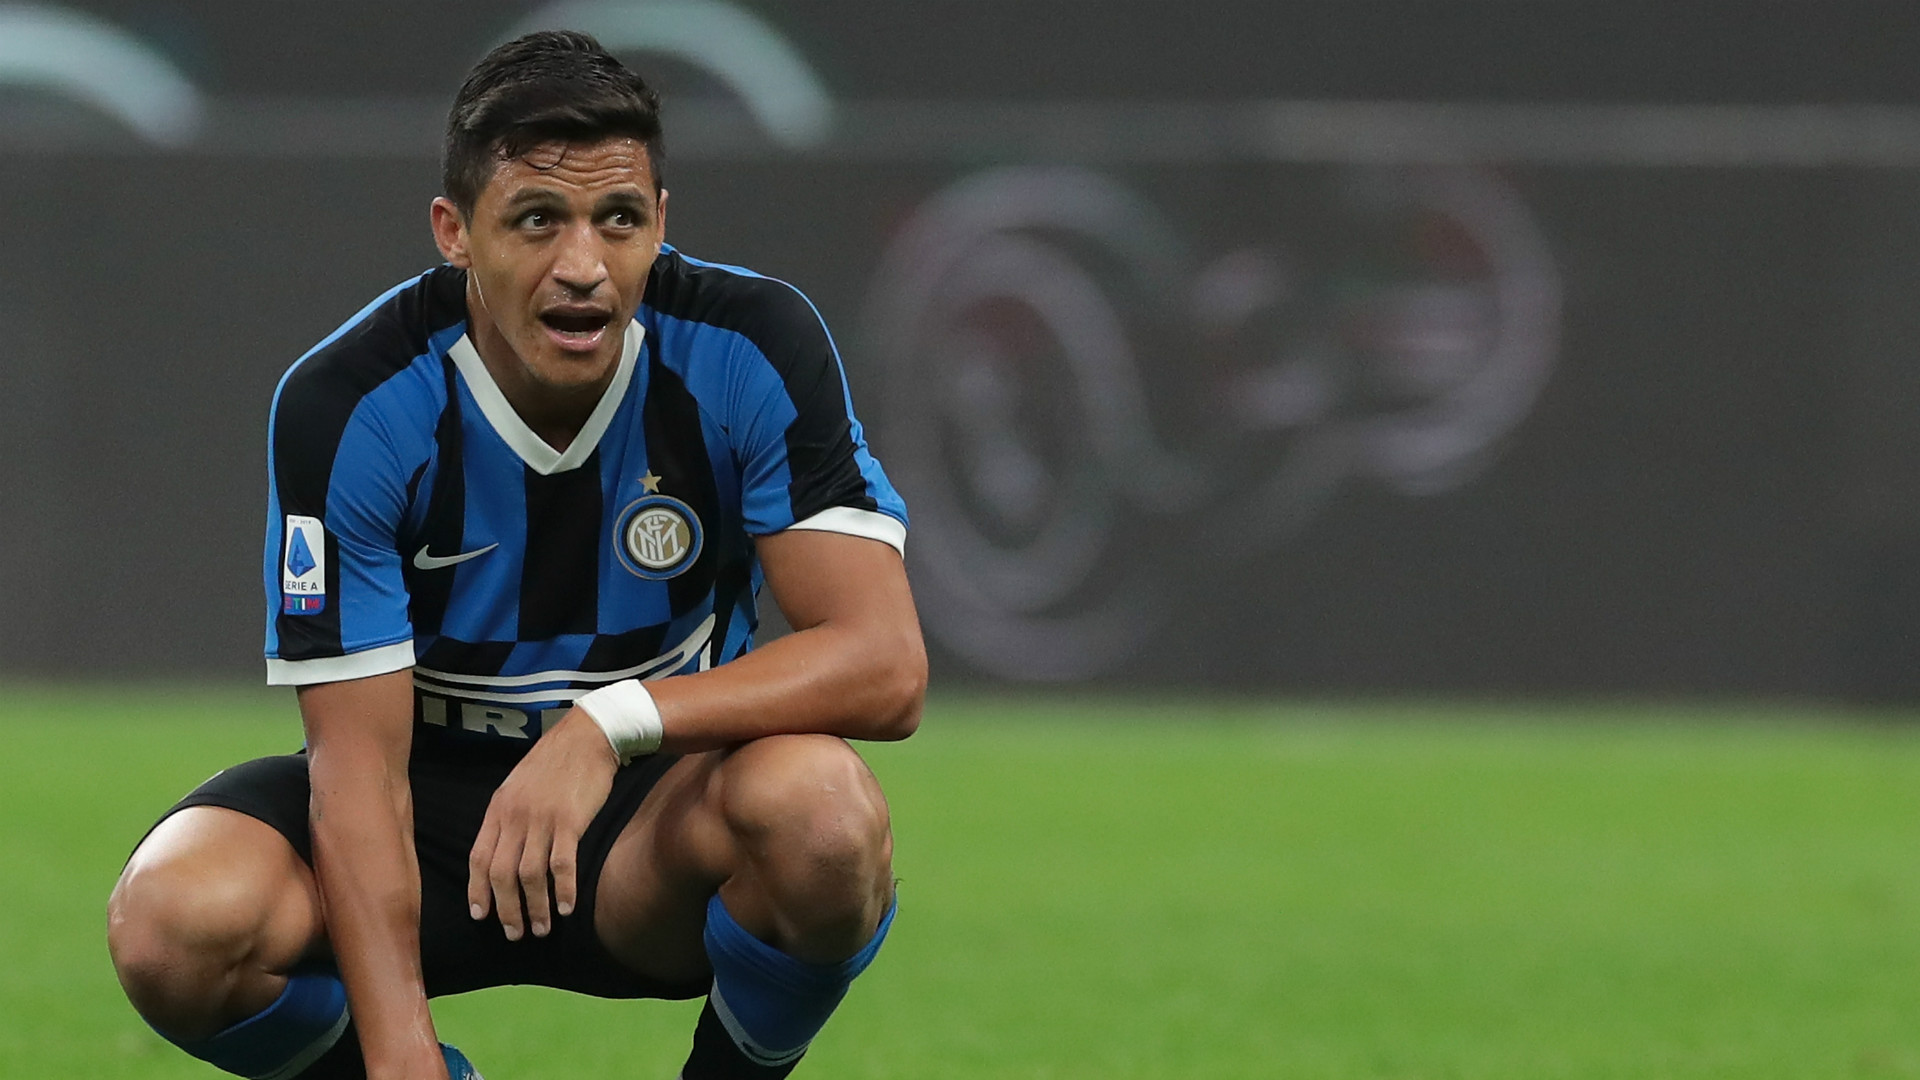 Alexis backed to become 'fundamental element' for Inter by San Siro legend Zanetti